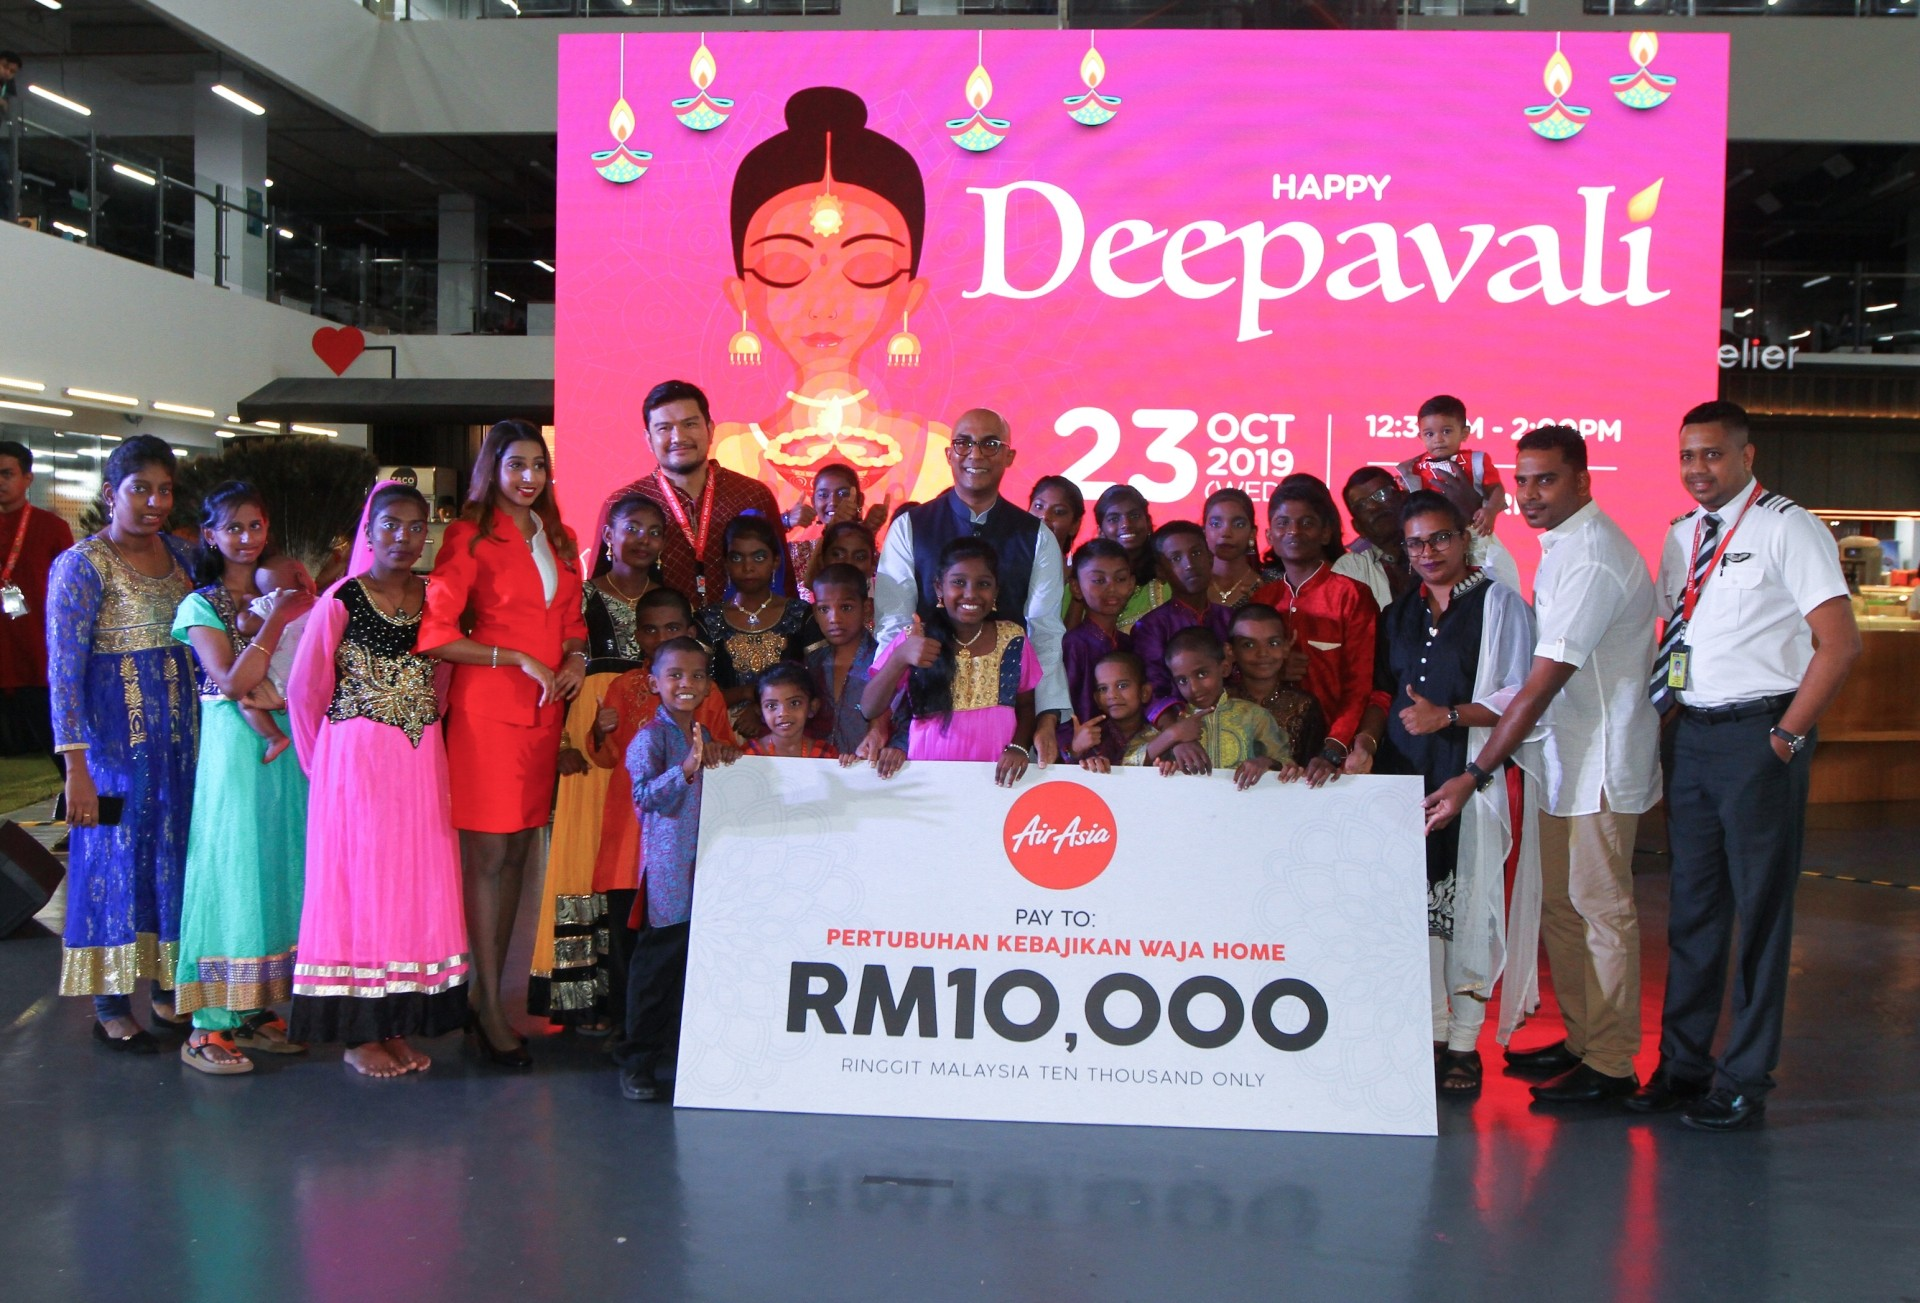 (Fifth from left) Benyamin, Bo, Sangeetha (in red) and Kugan (far right) presenting the cash donation to Waja Home.